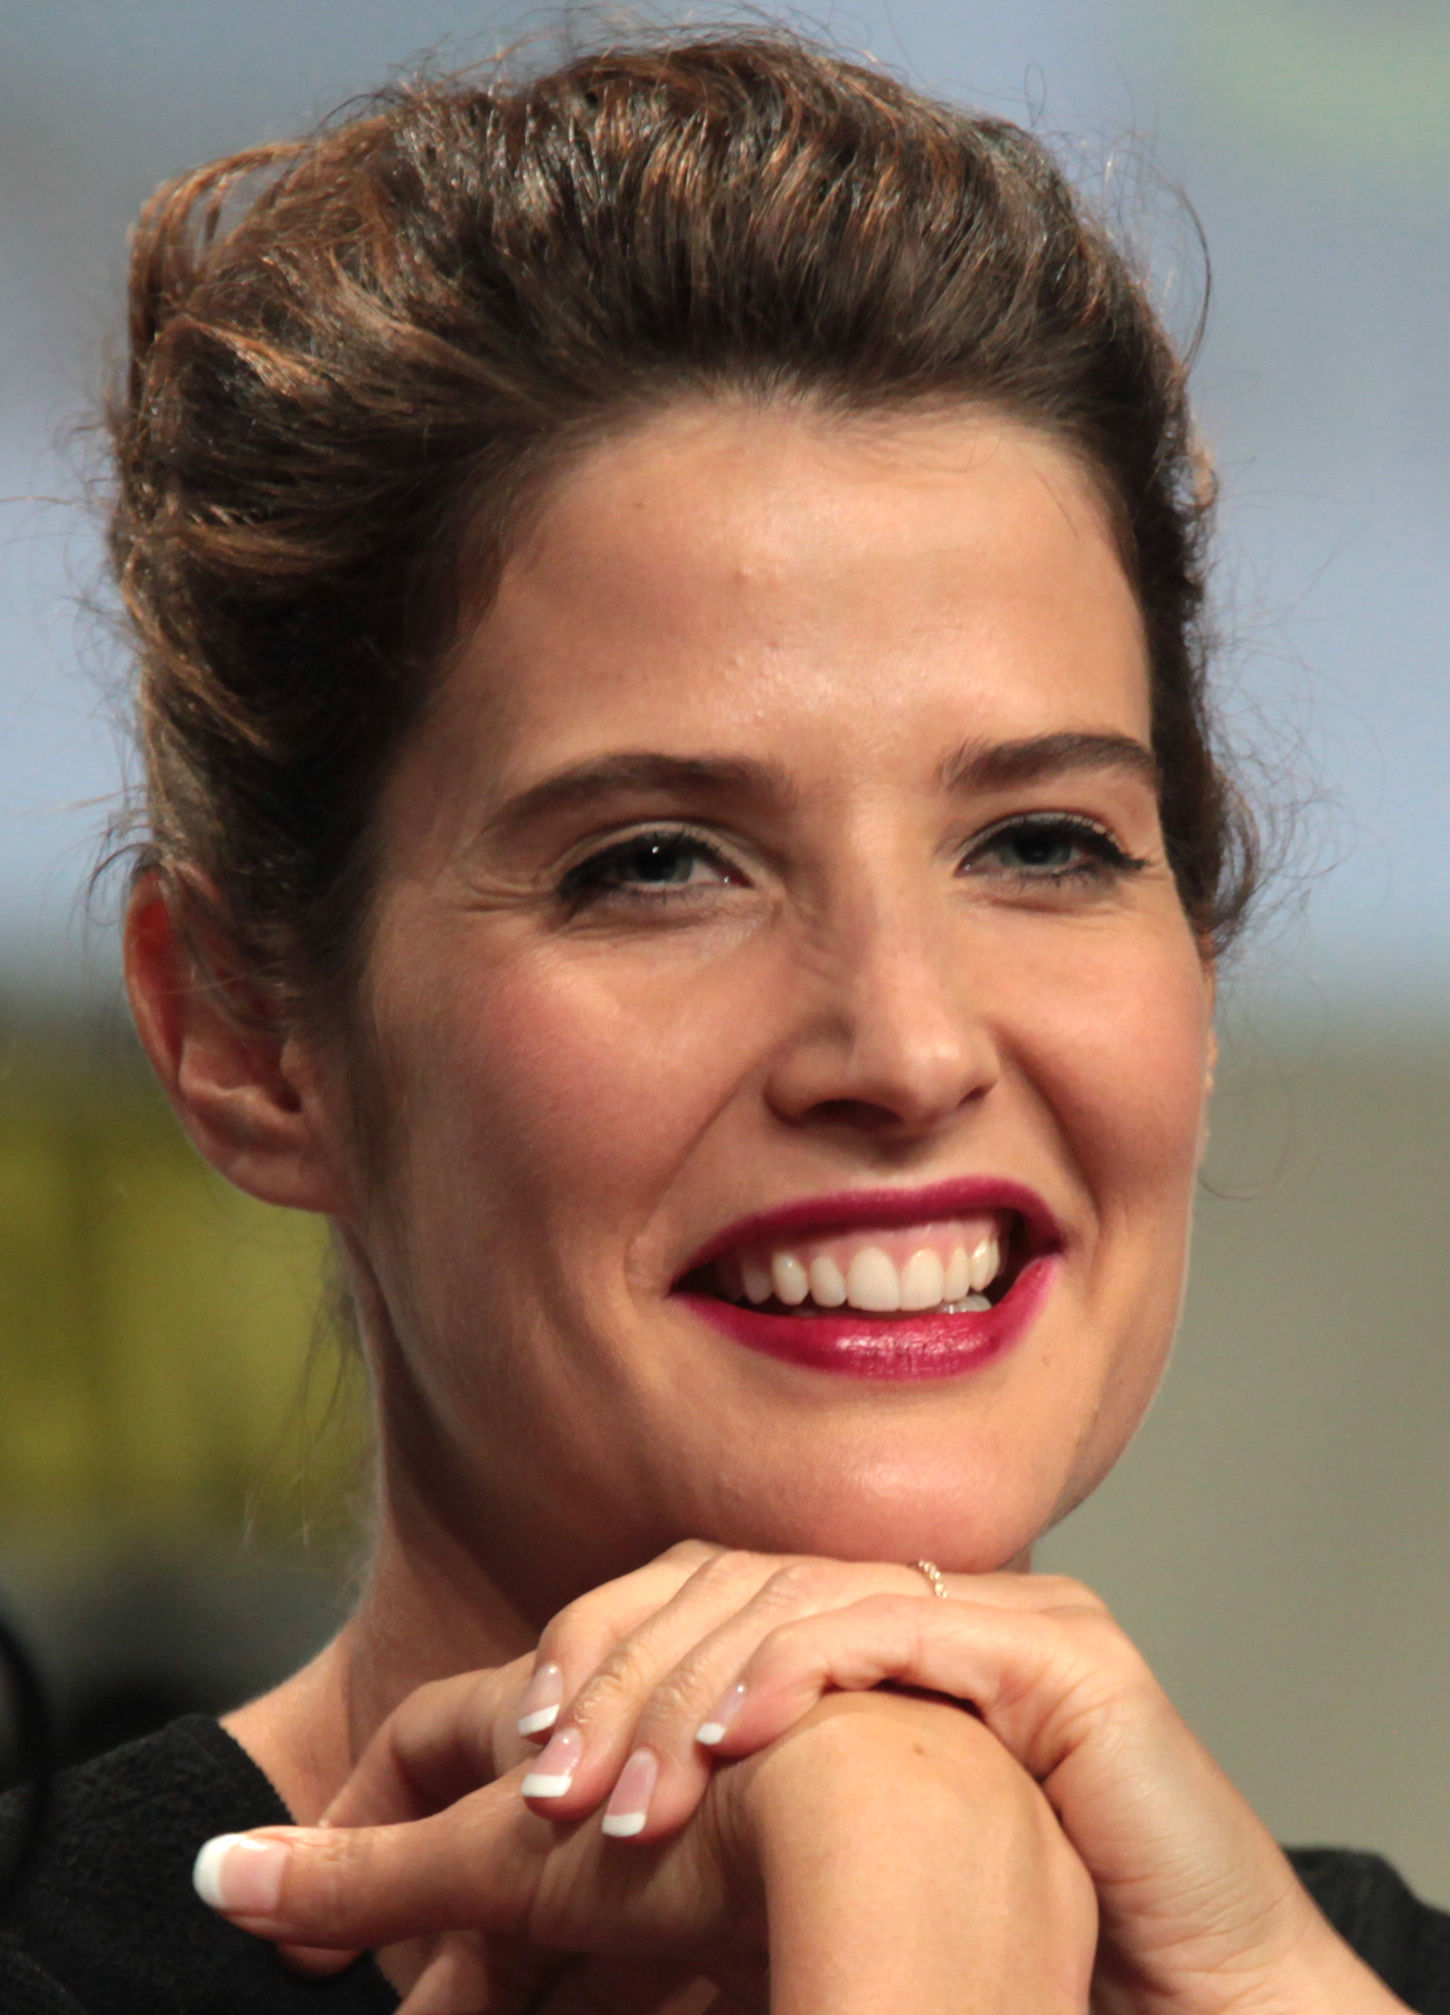 Photo of Cobie Smulders: Canadian actress and former model